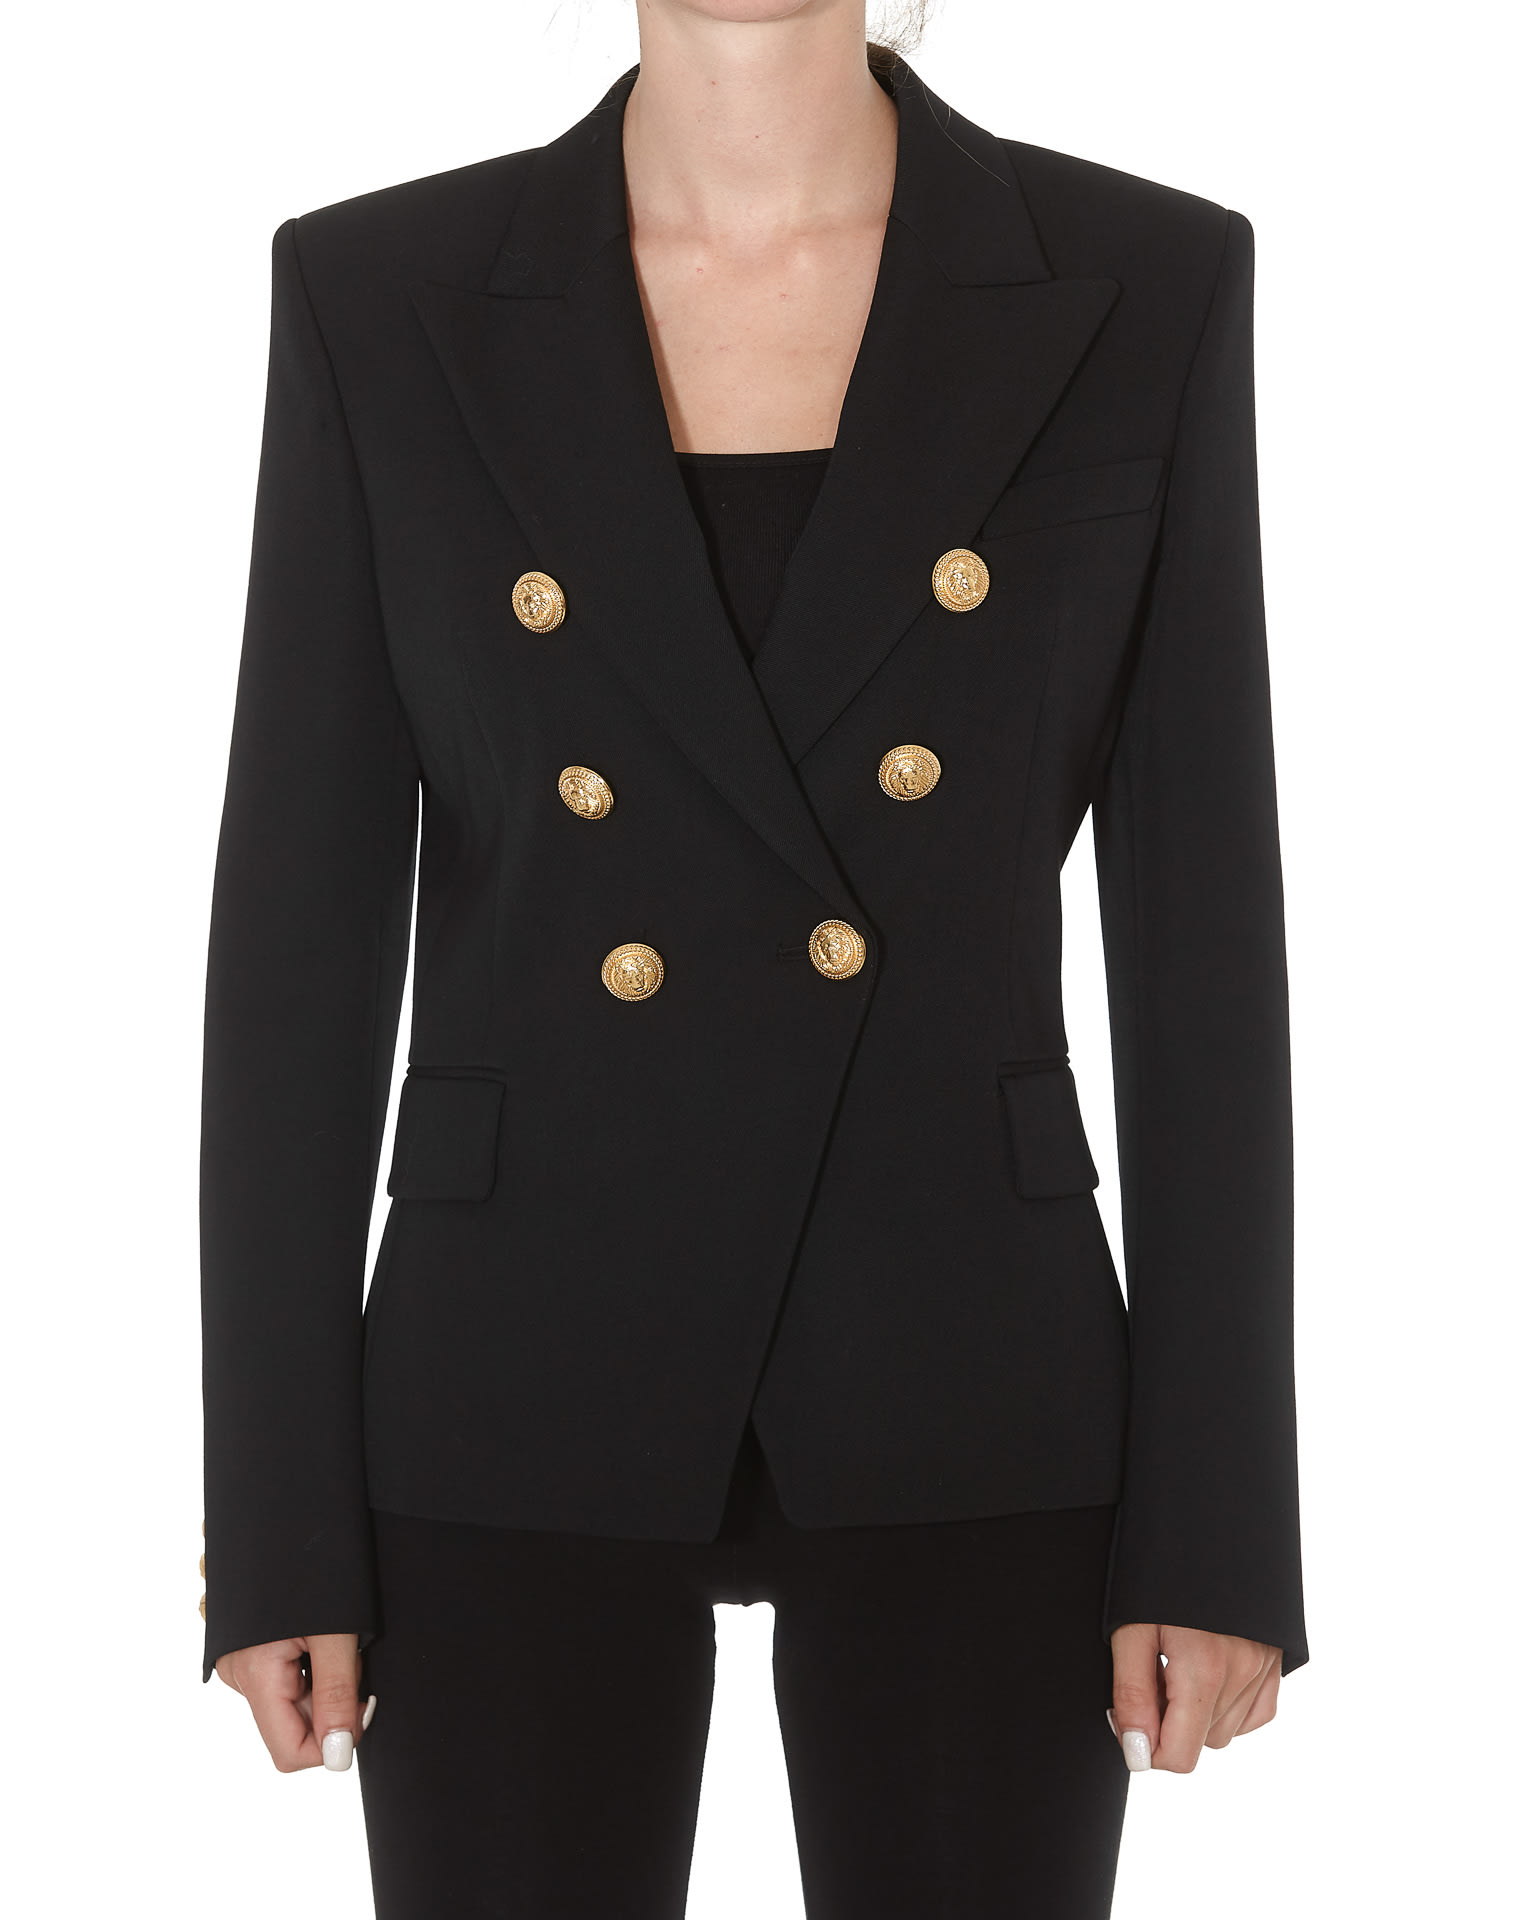 Balmain 6 Buttons Jacket